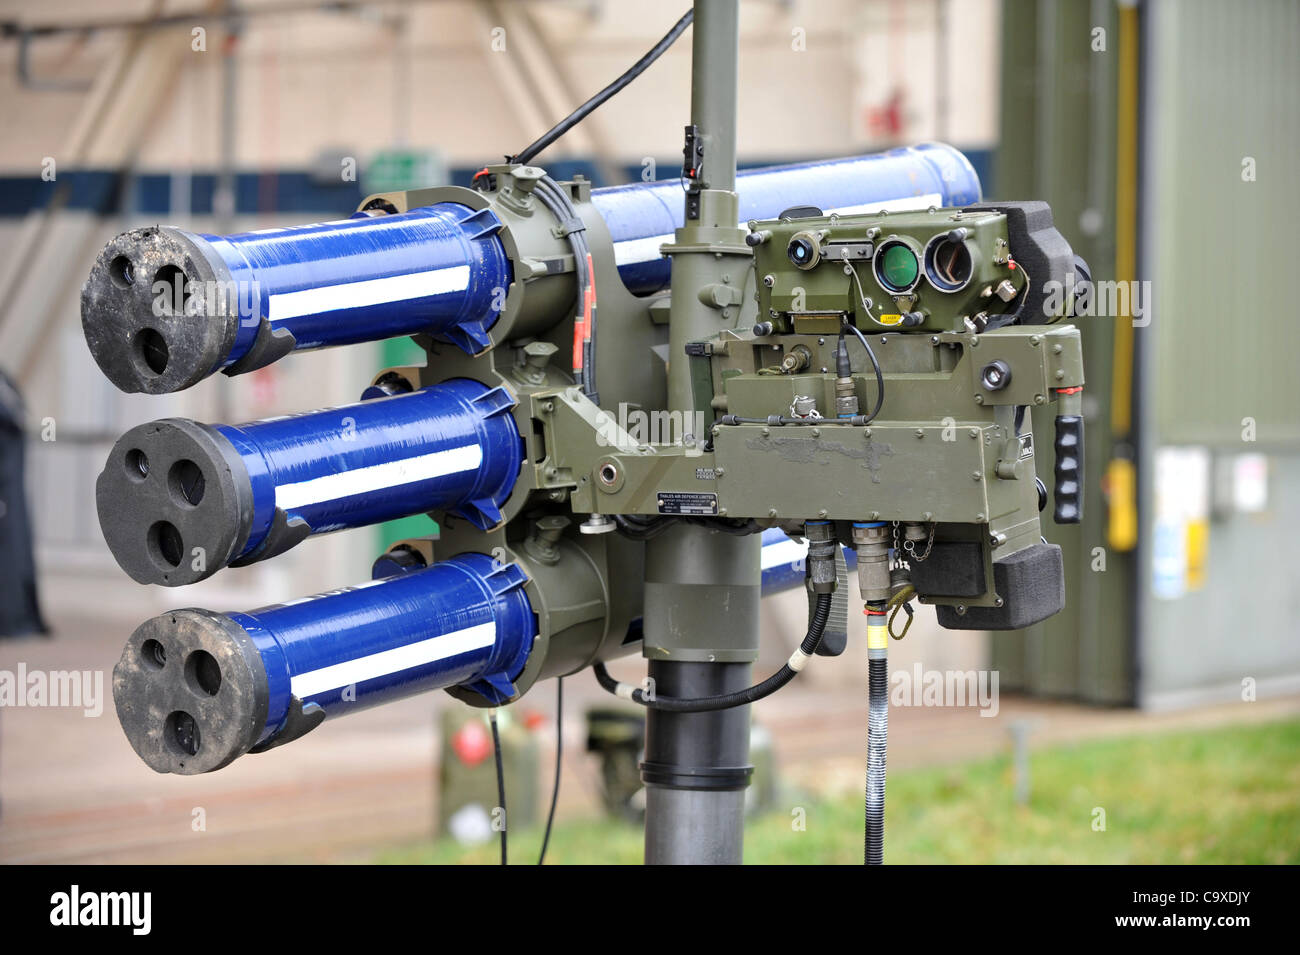 Starstreak high velocity air defence missile system. - Stock Image